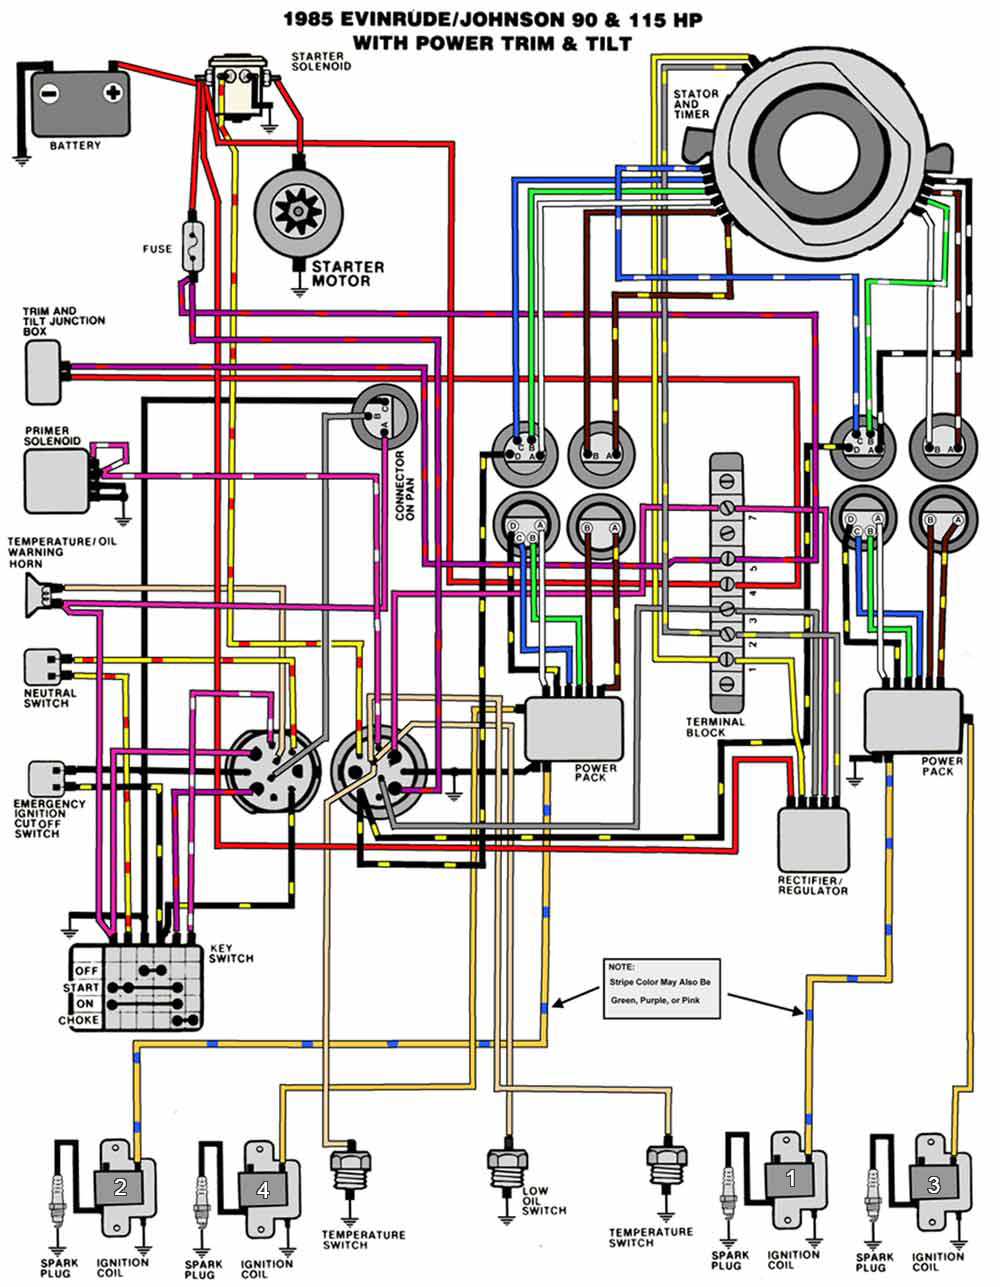 1985_90_115TnT evinrude vro wiring diagram evinrude wiring diagram outboards yamaha key switch wiring diagram at gsmportal.co